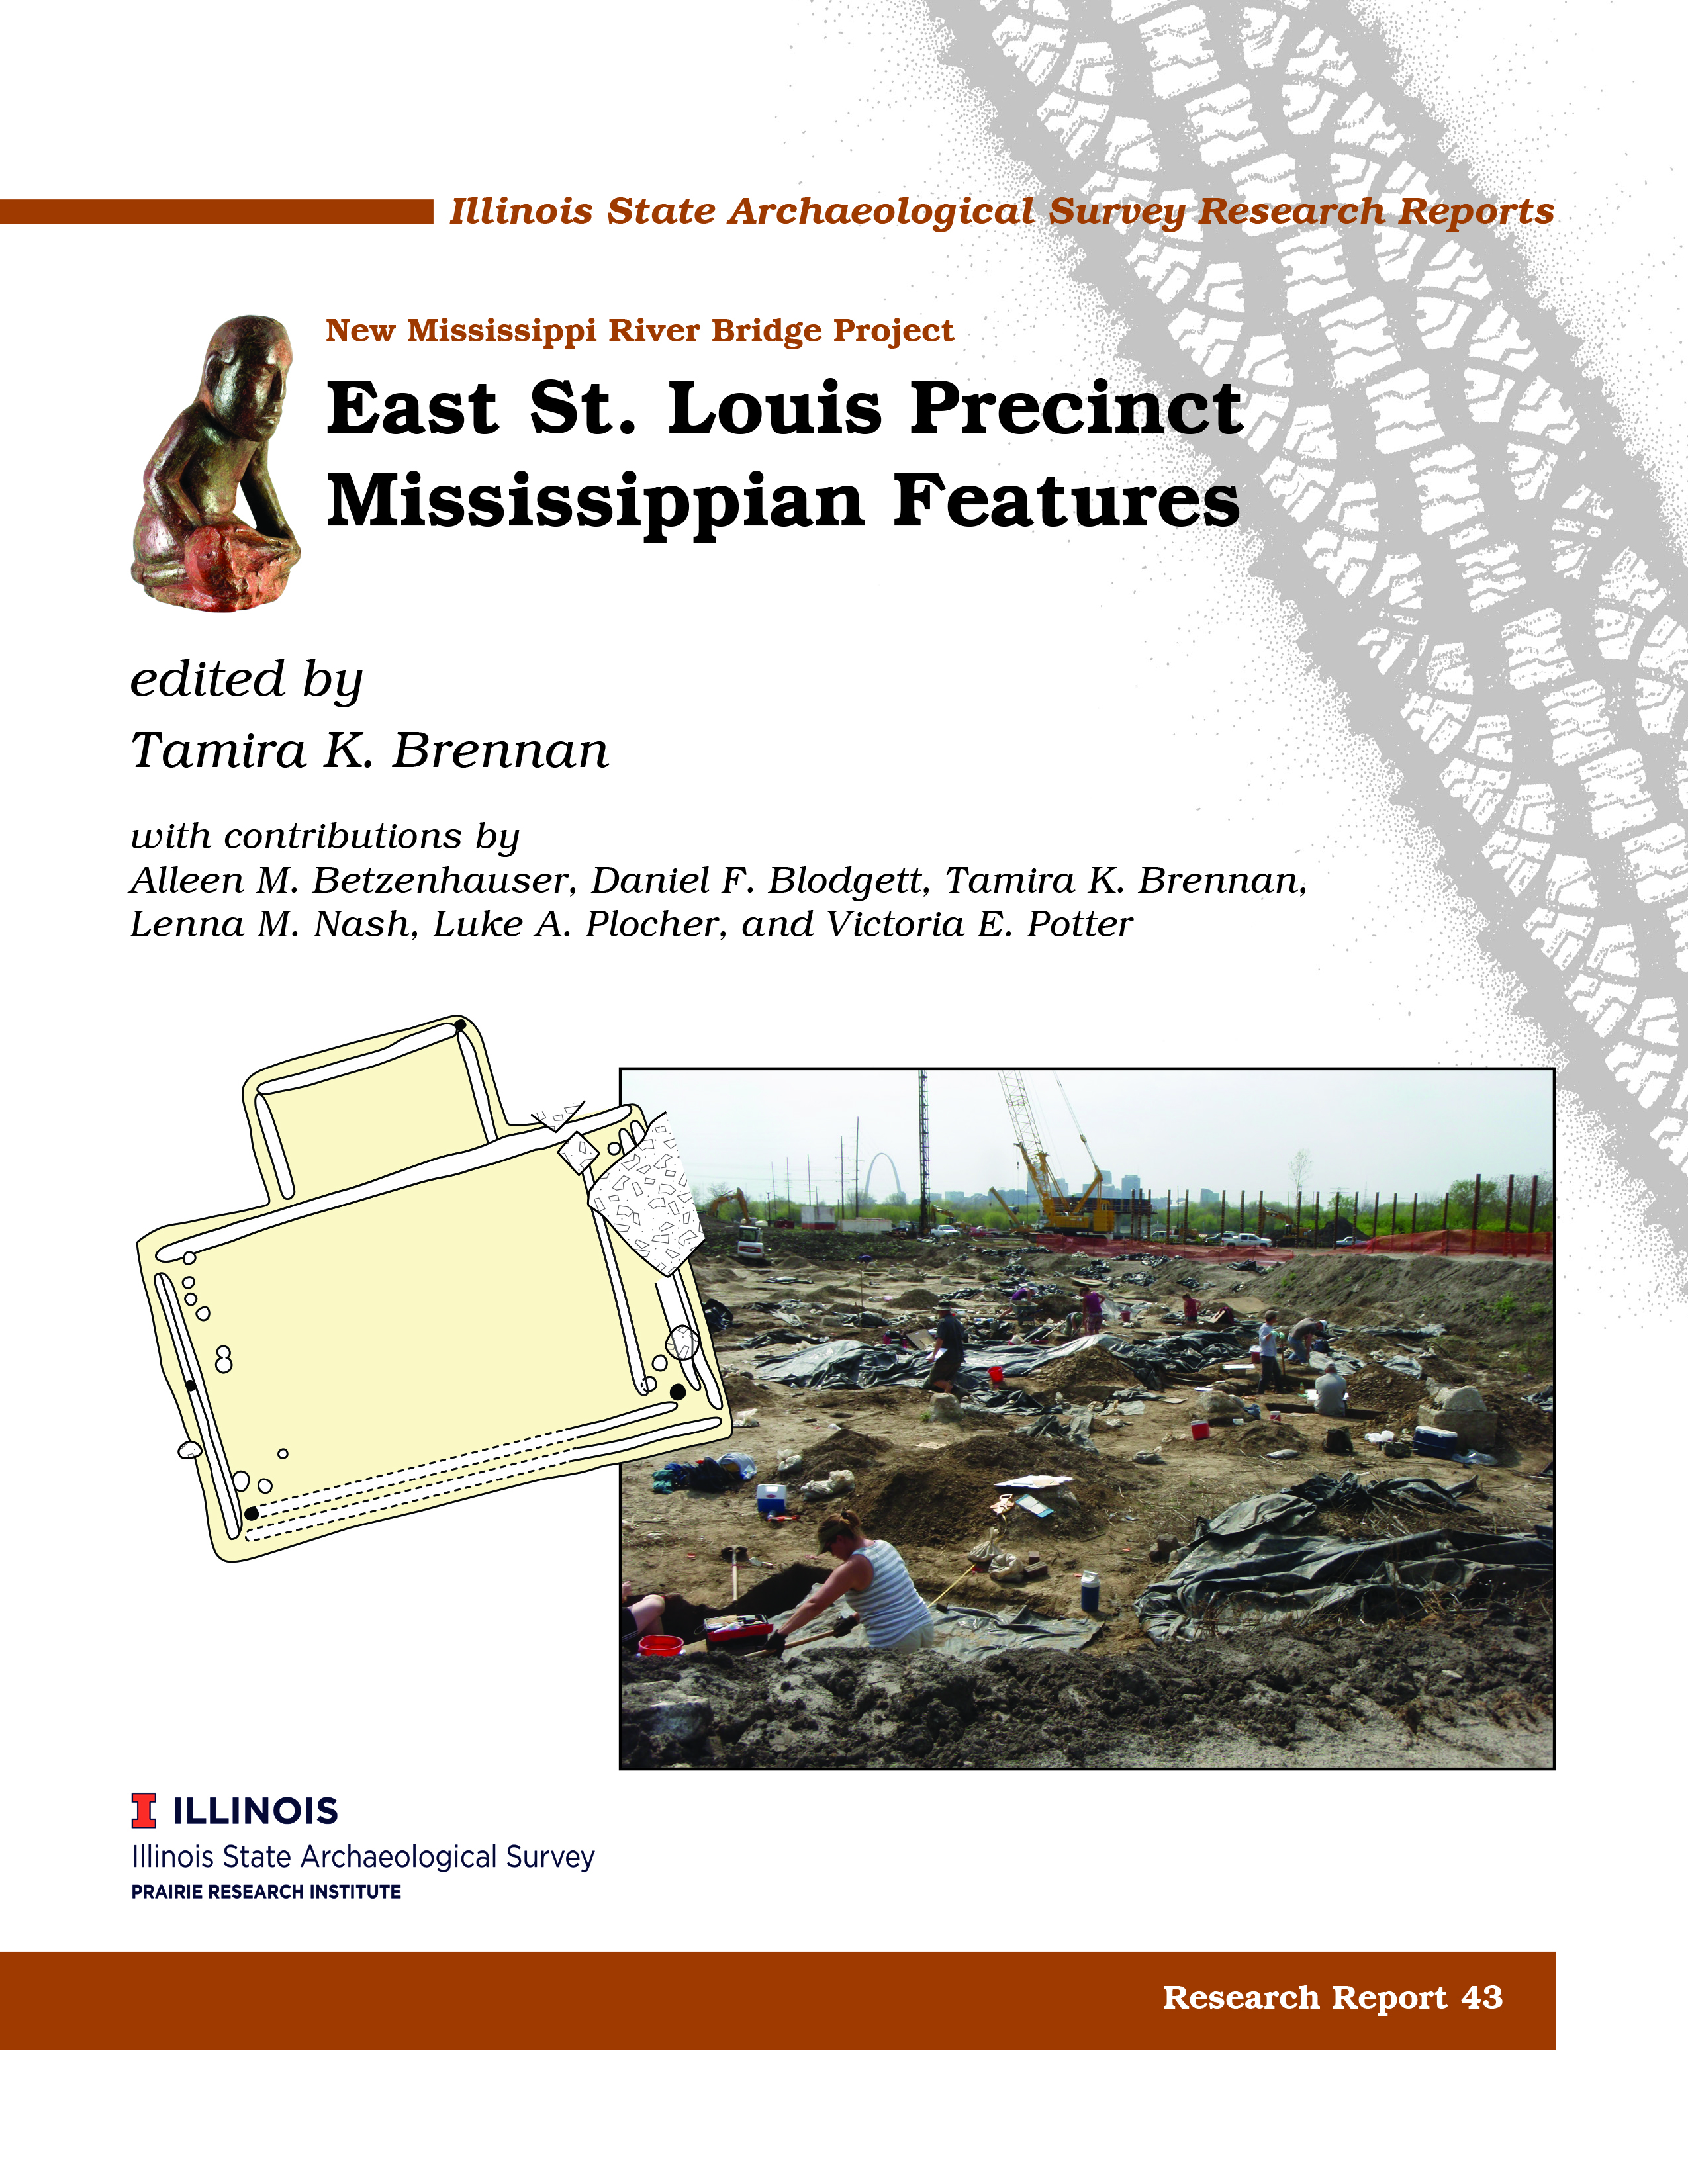 RR 43: ESTL Precinct Mississippian Features